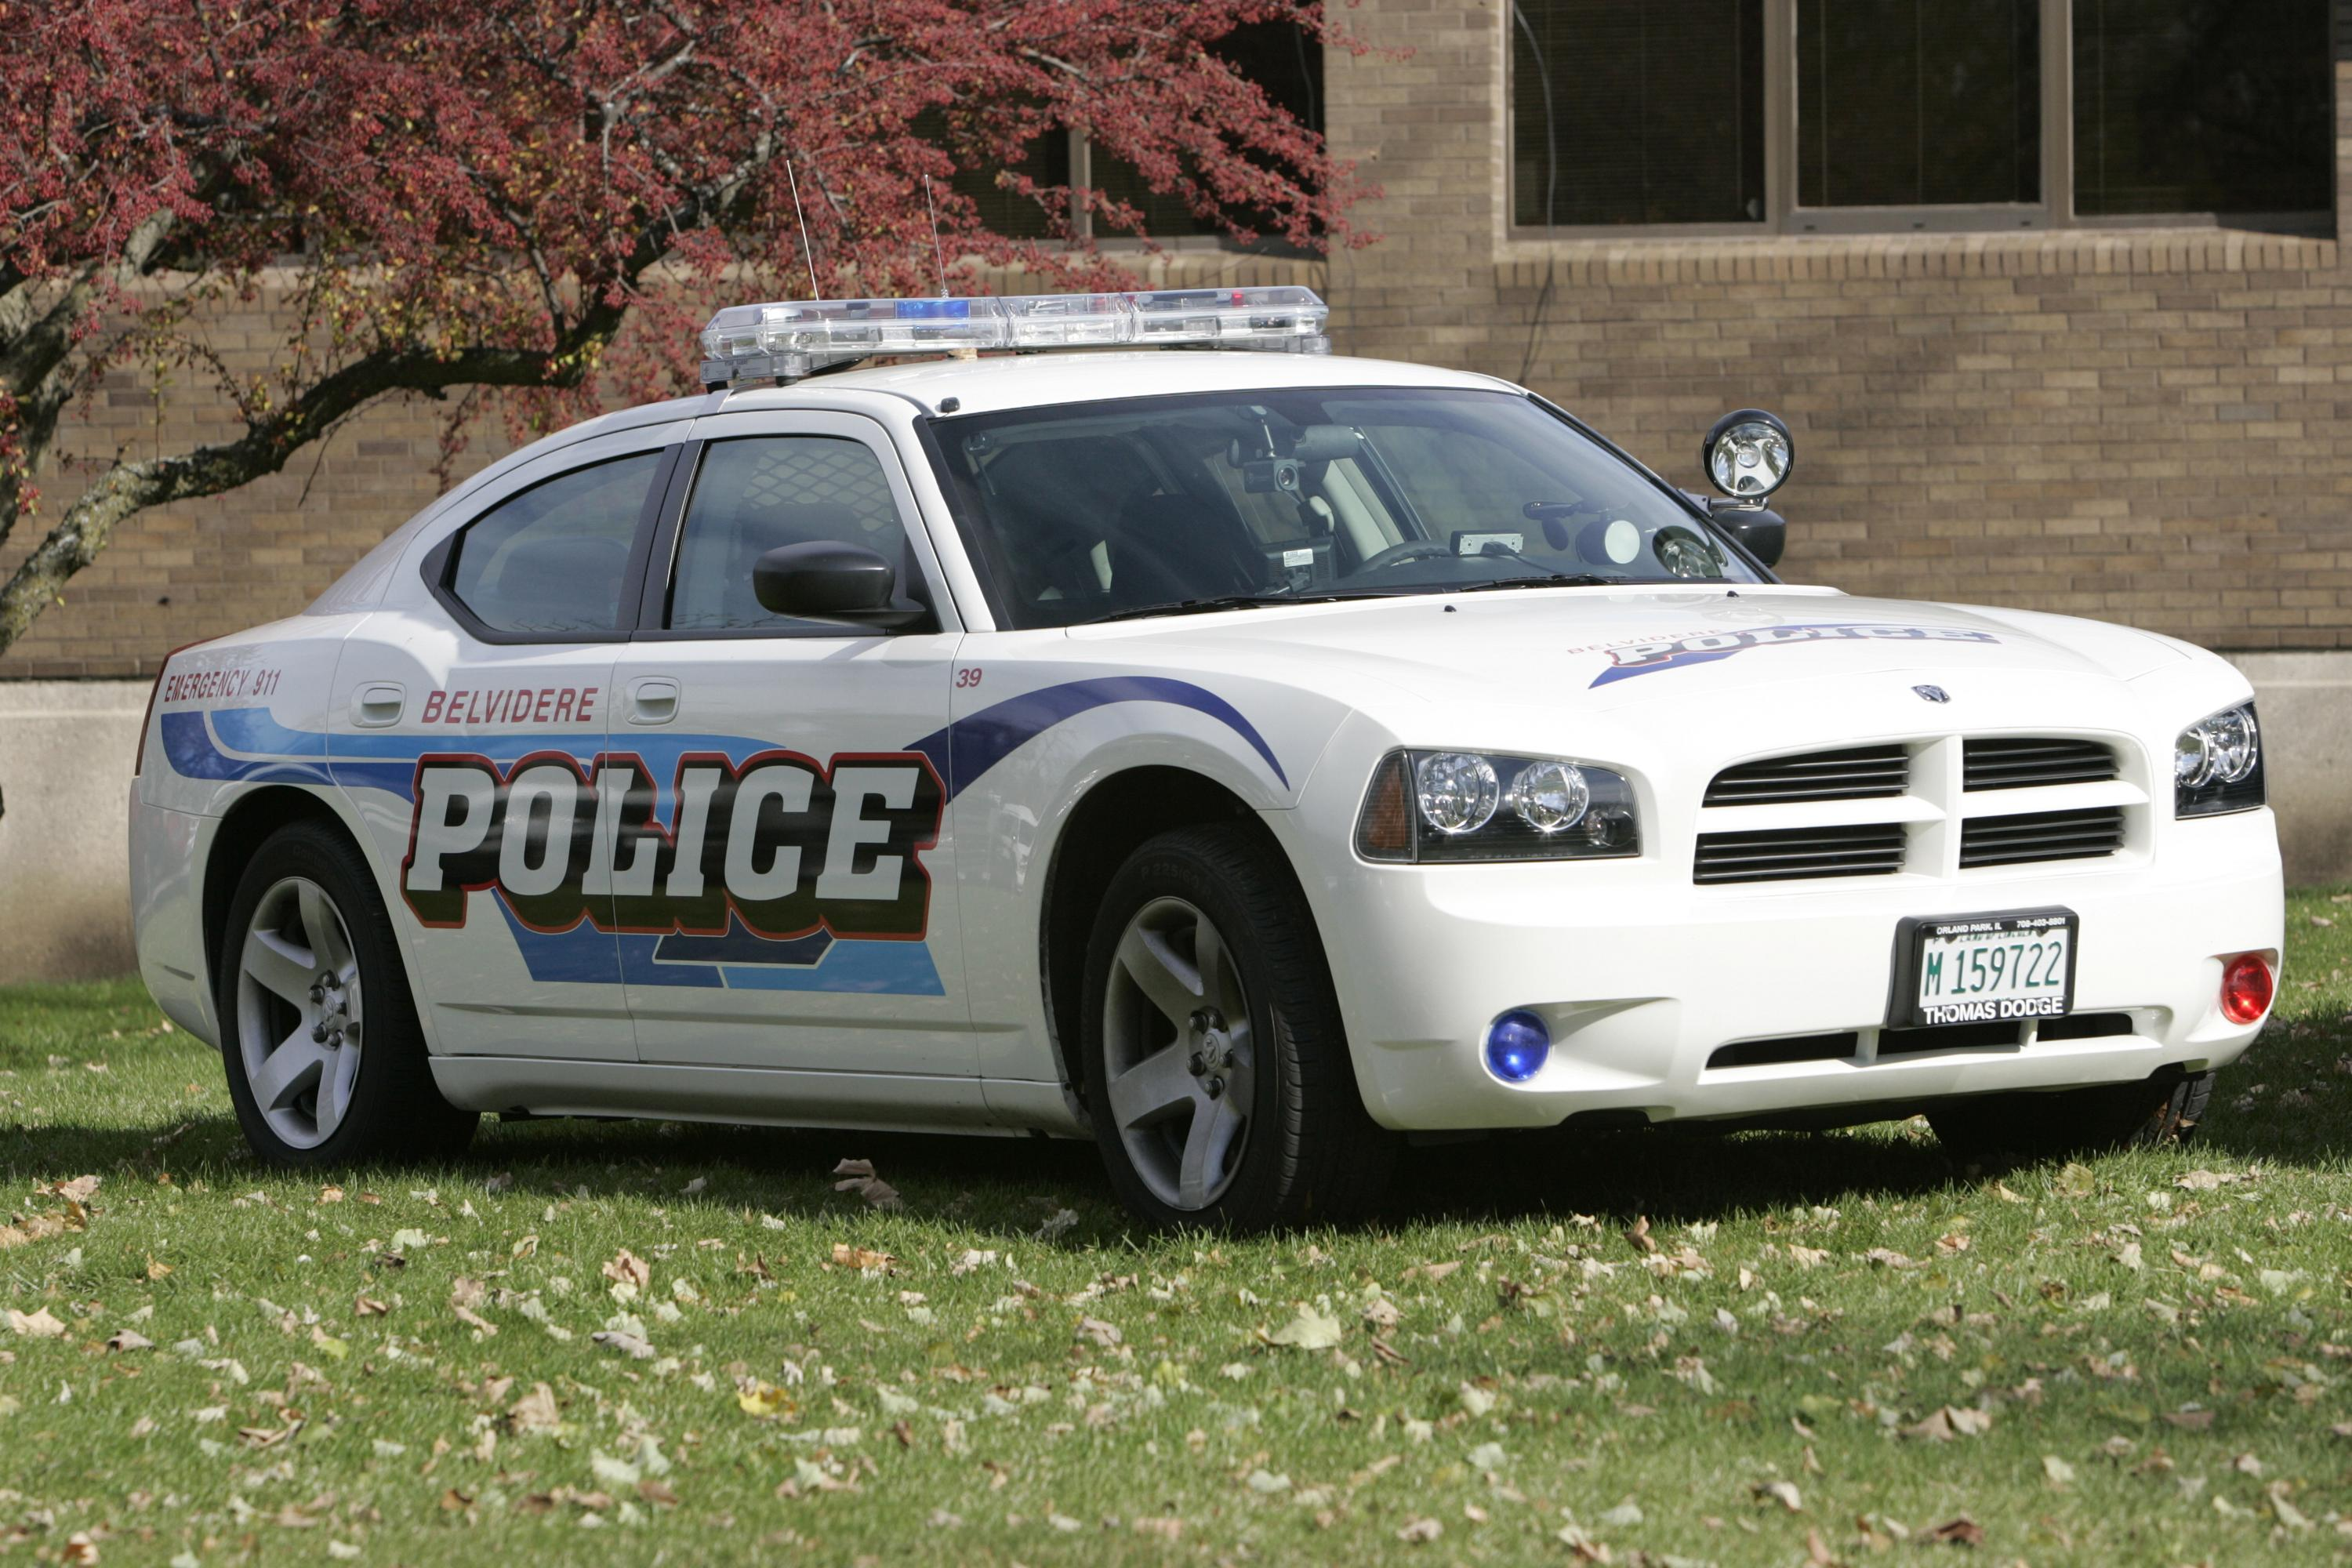 2006 Dodge Charger 3 5 Liter V6 Police Car Top Speed